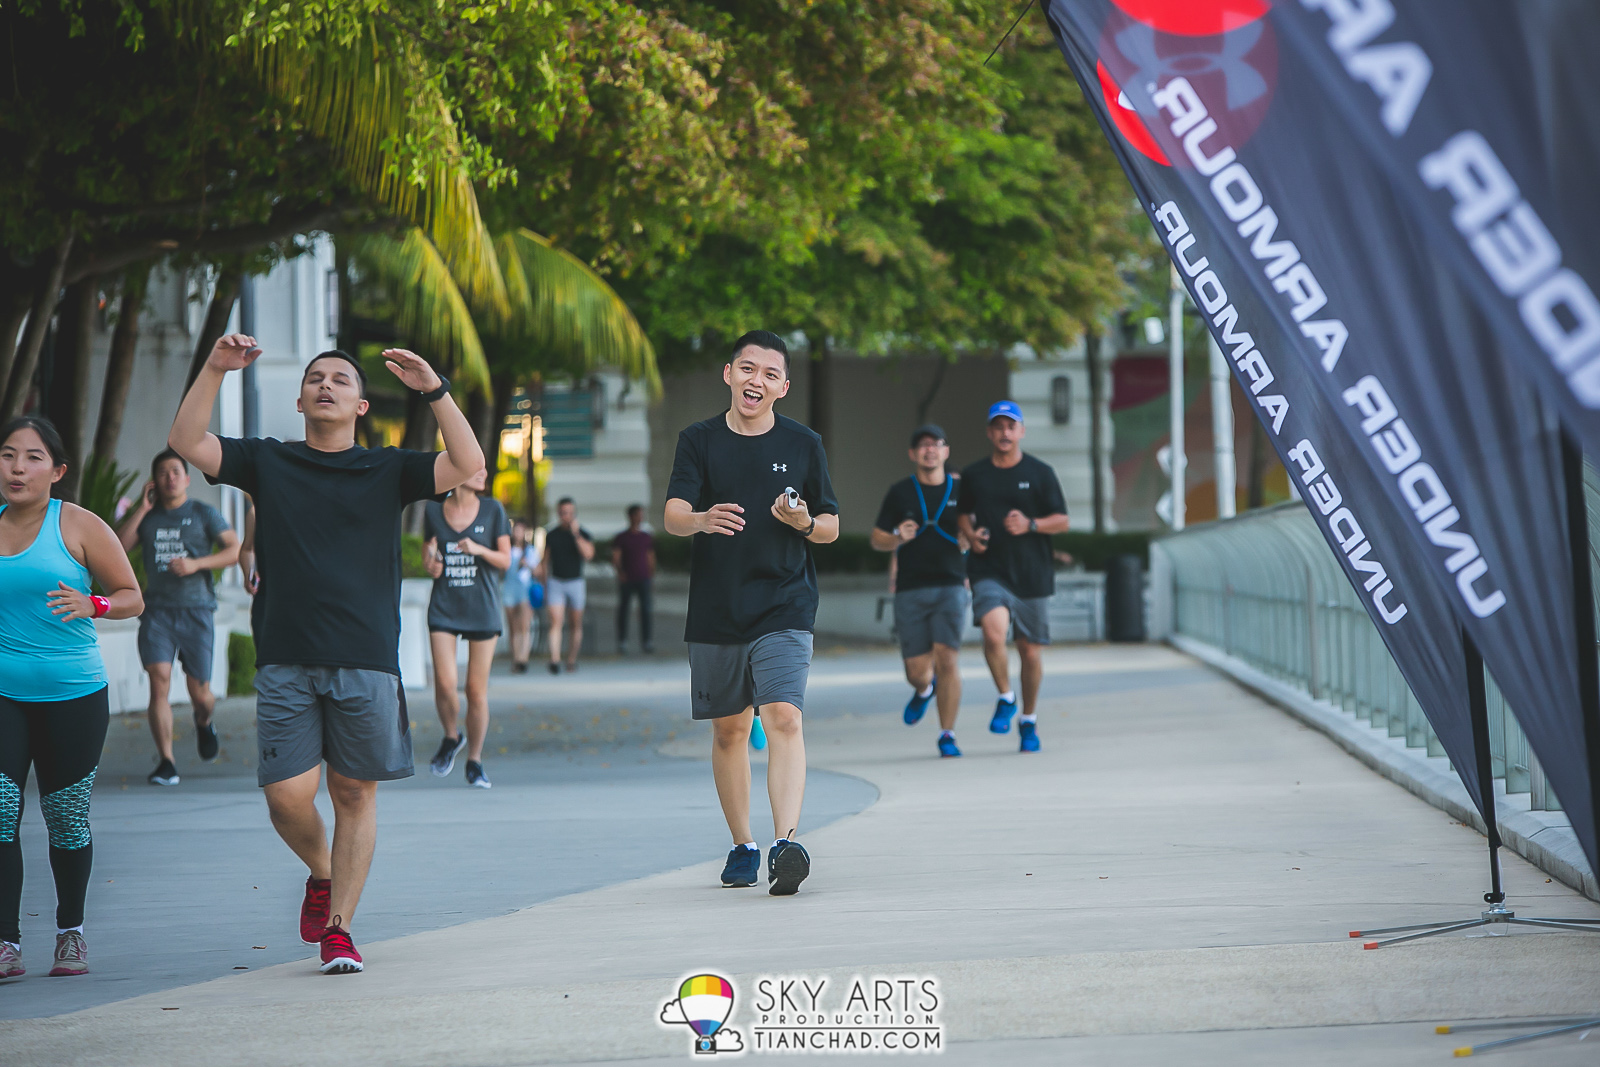 Roller skate shoes penang - Under Armour Coolswitch Fitness Apparel Review New Outlet In Penang Underarmourmy